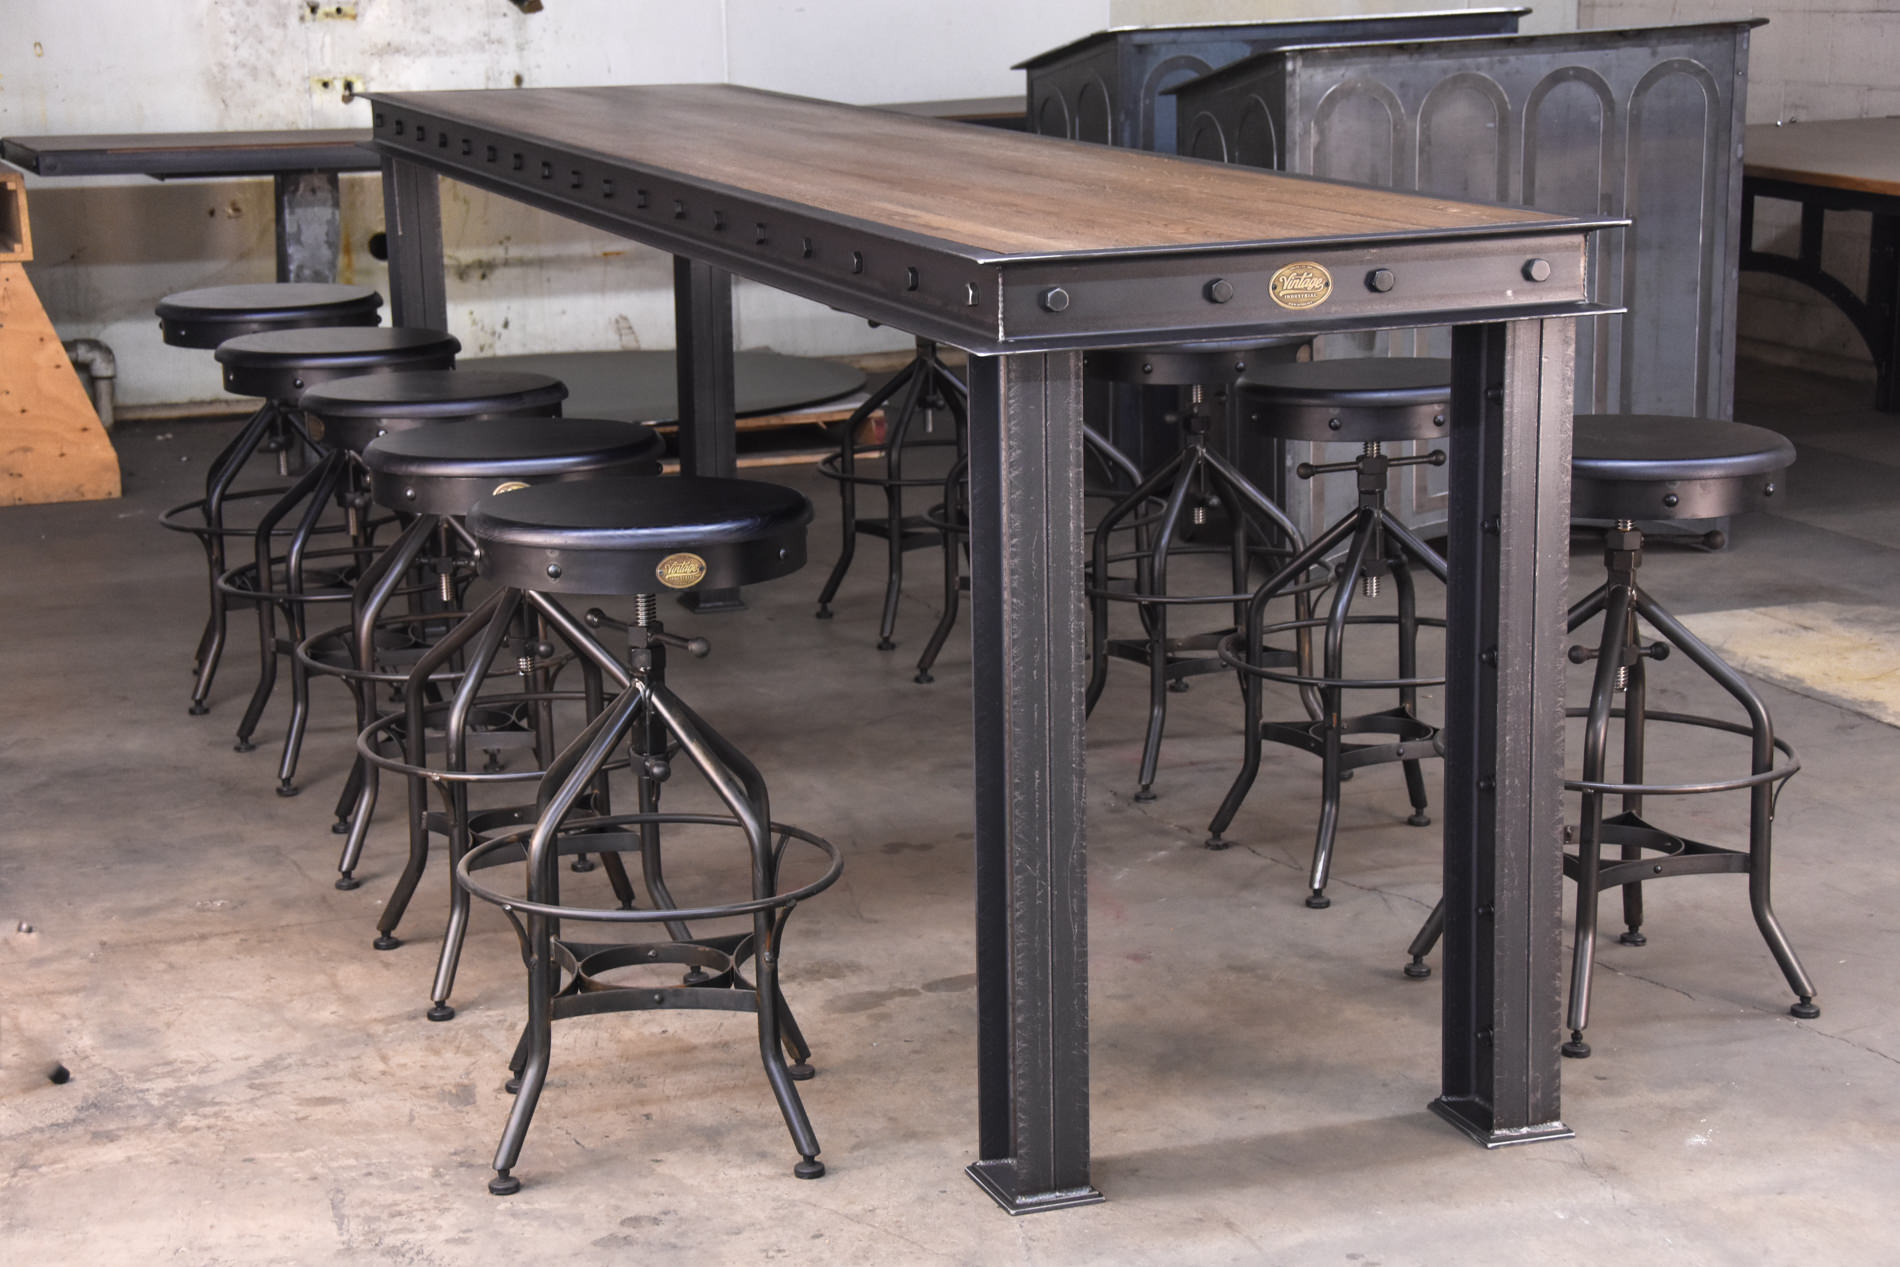 retro dining table chairs uk best executive office chair firehouse bar – model #fh9 vintage industrial furniture